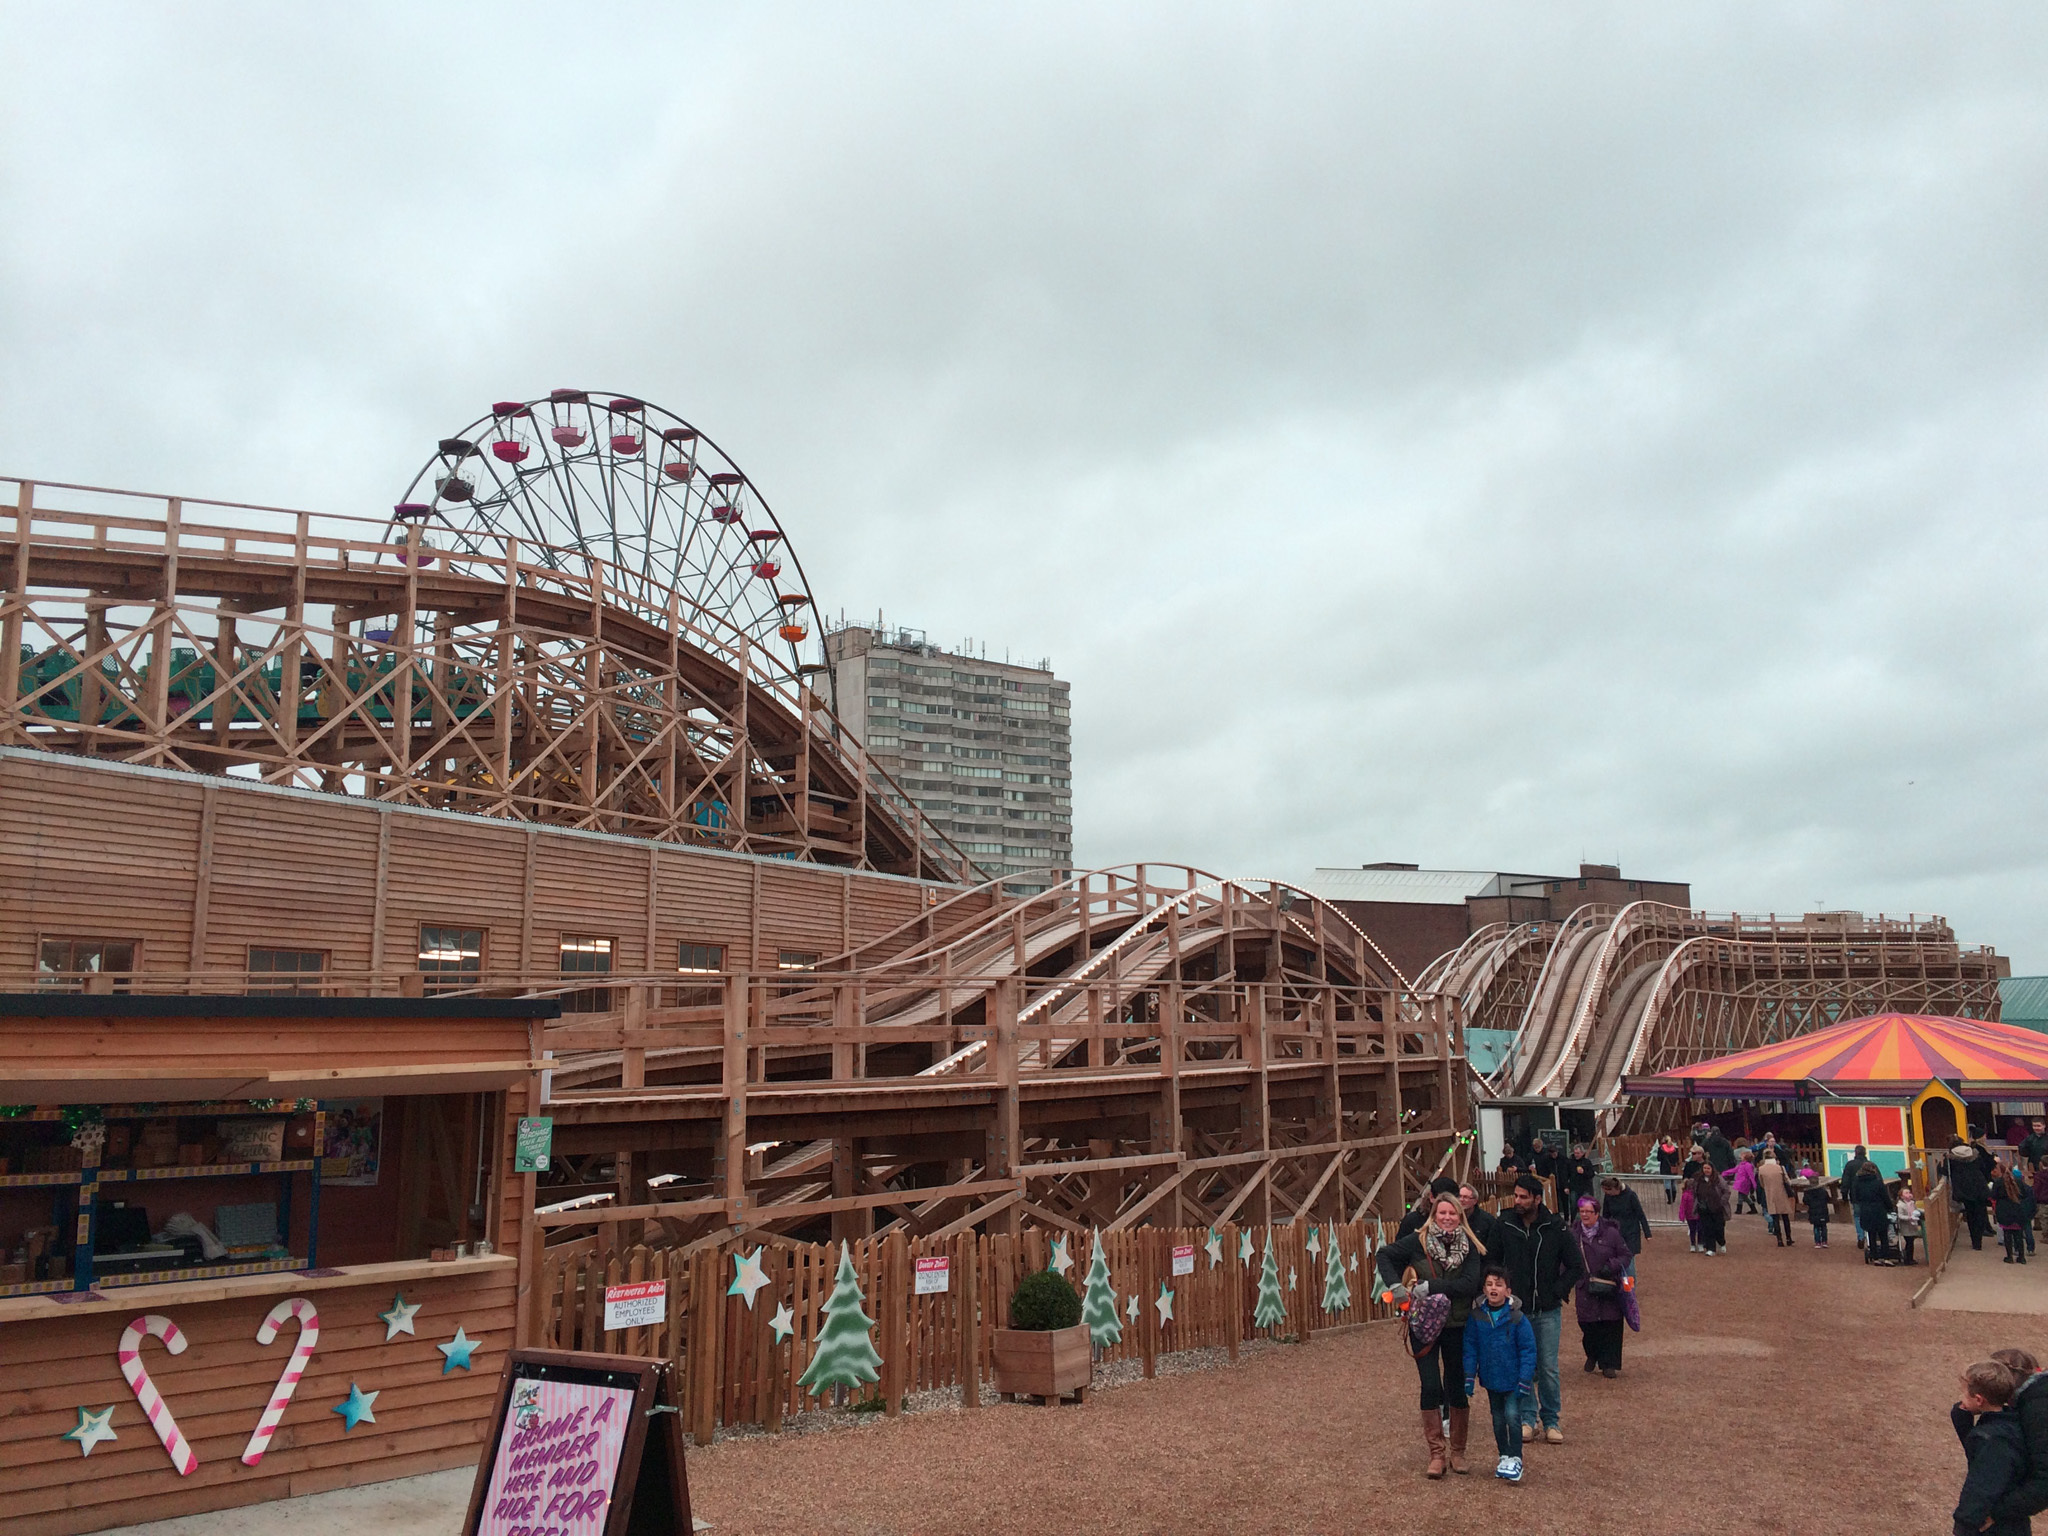 Dreamland's Frosted Fairground